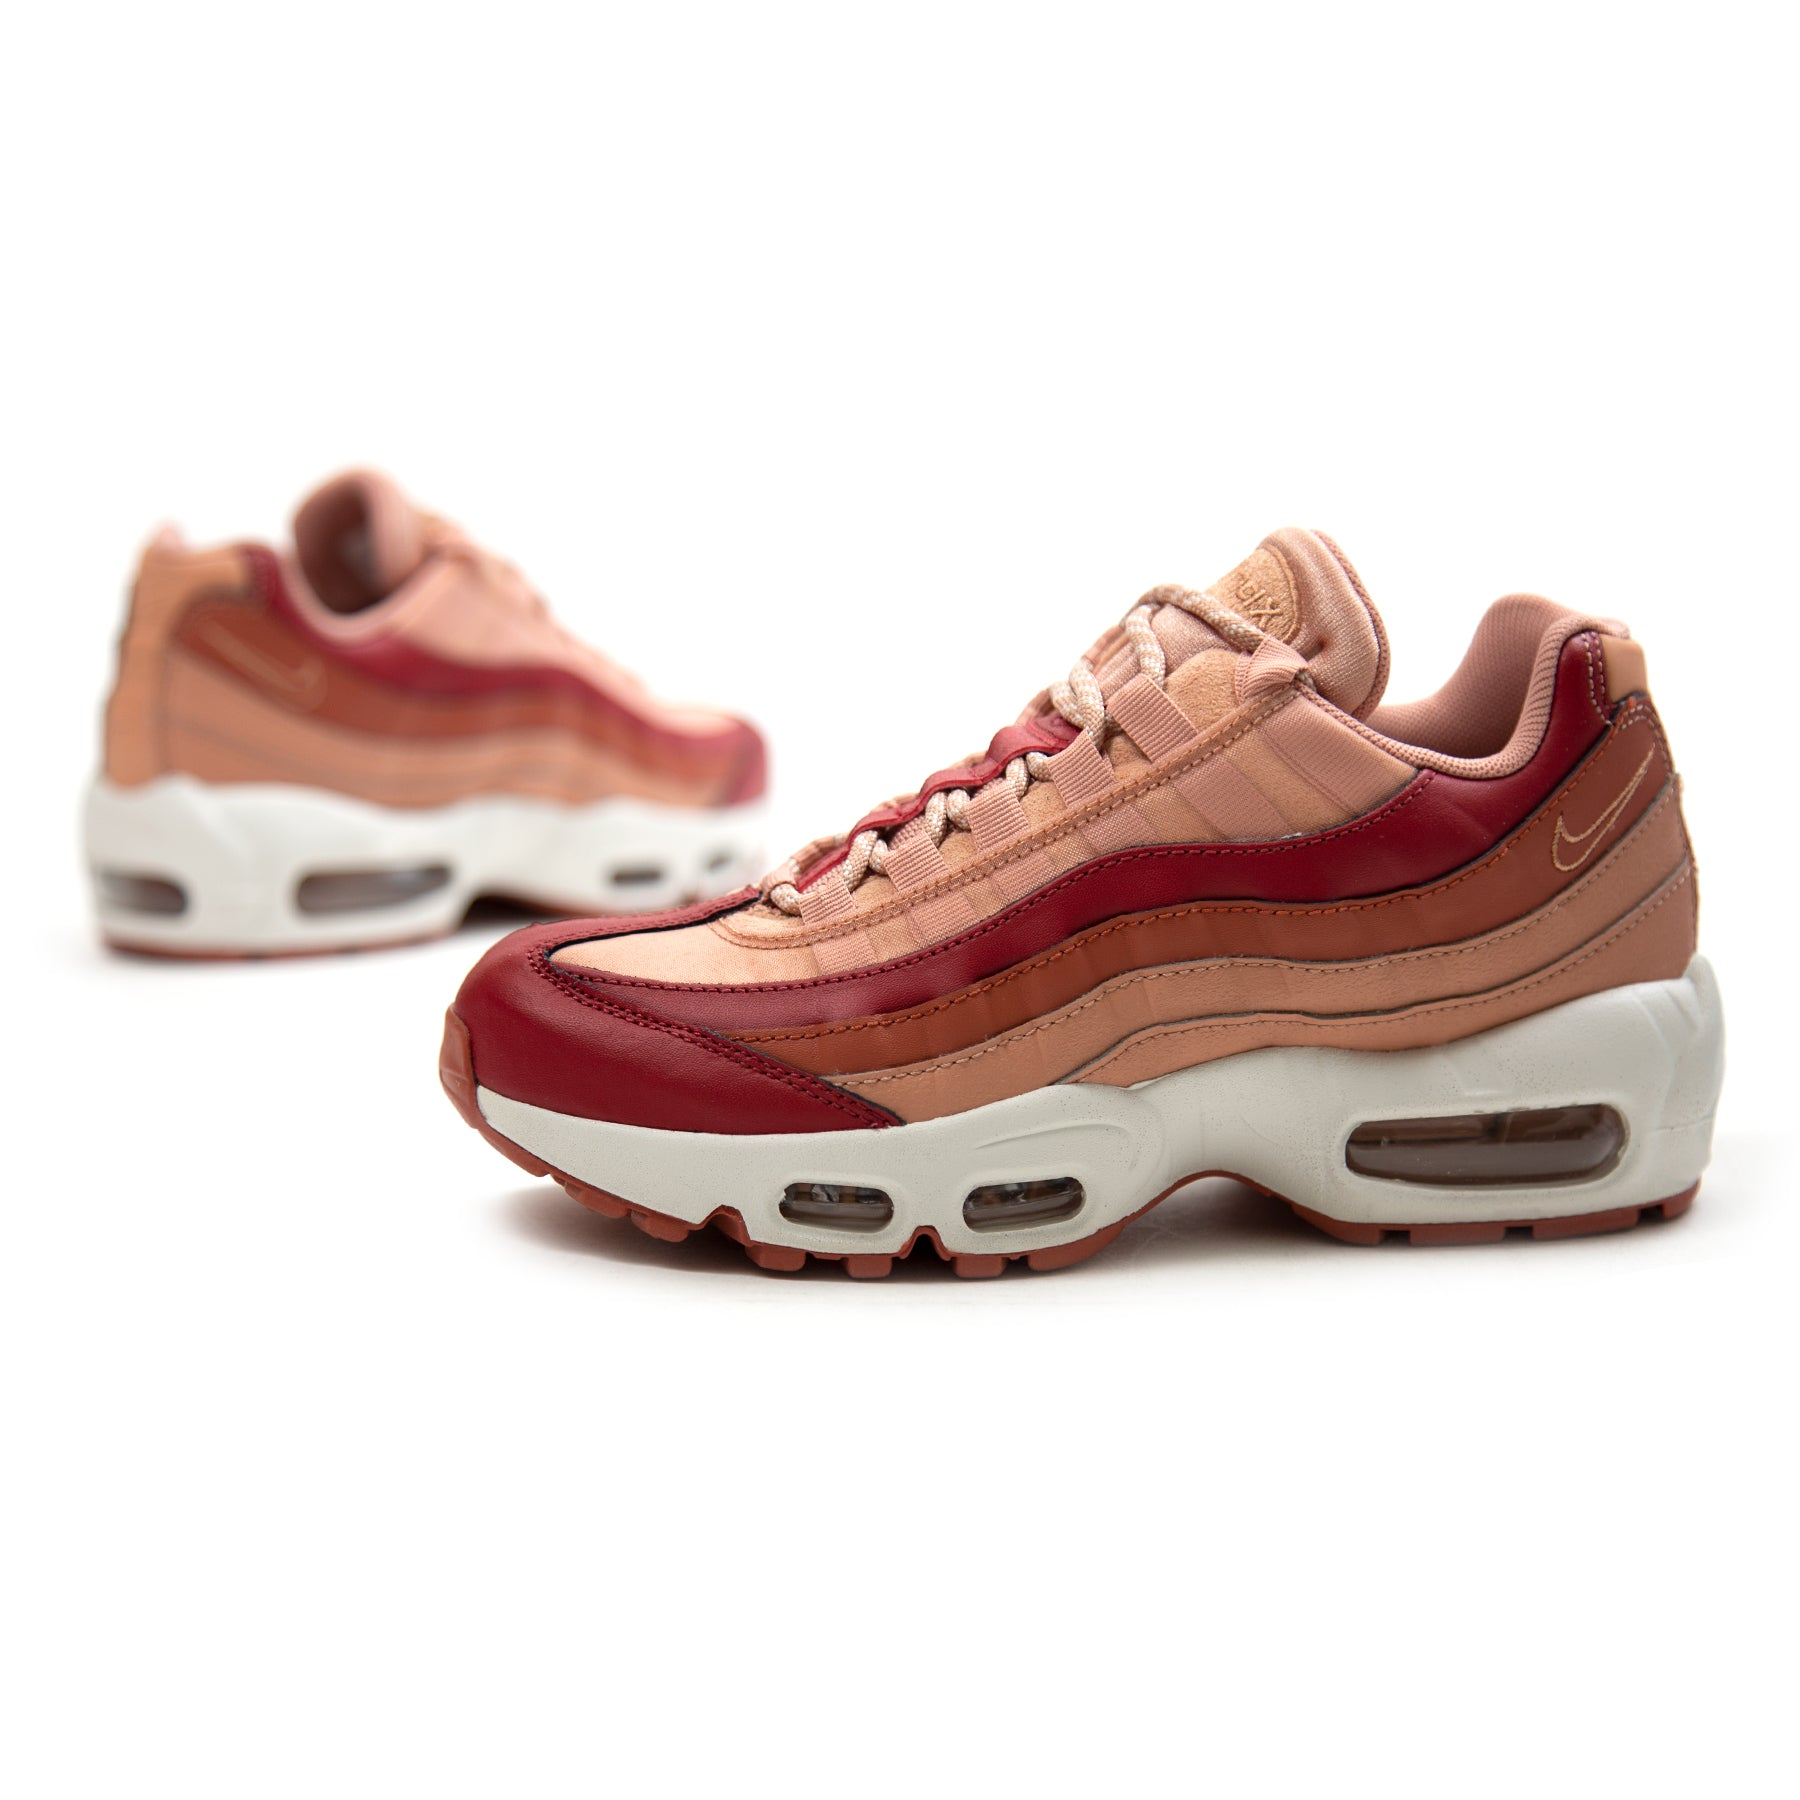 sports shoes f3e12 ad14b ConceptsIntl | Nike Women's Air Max 95 (Team Crimson/Dusty ...